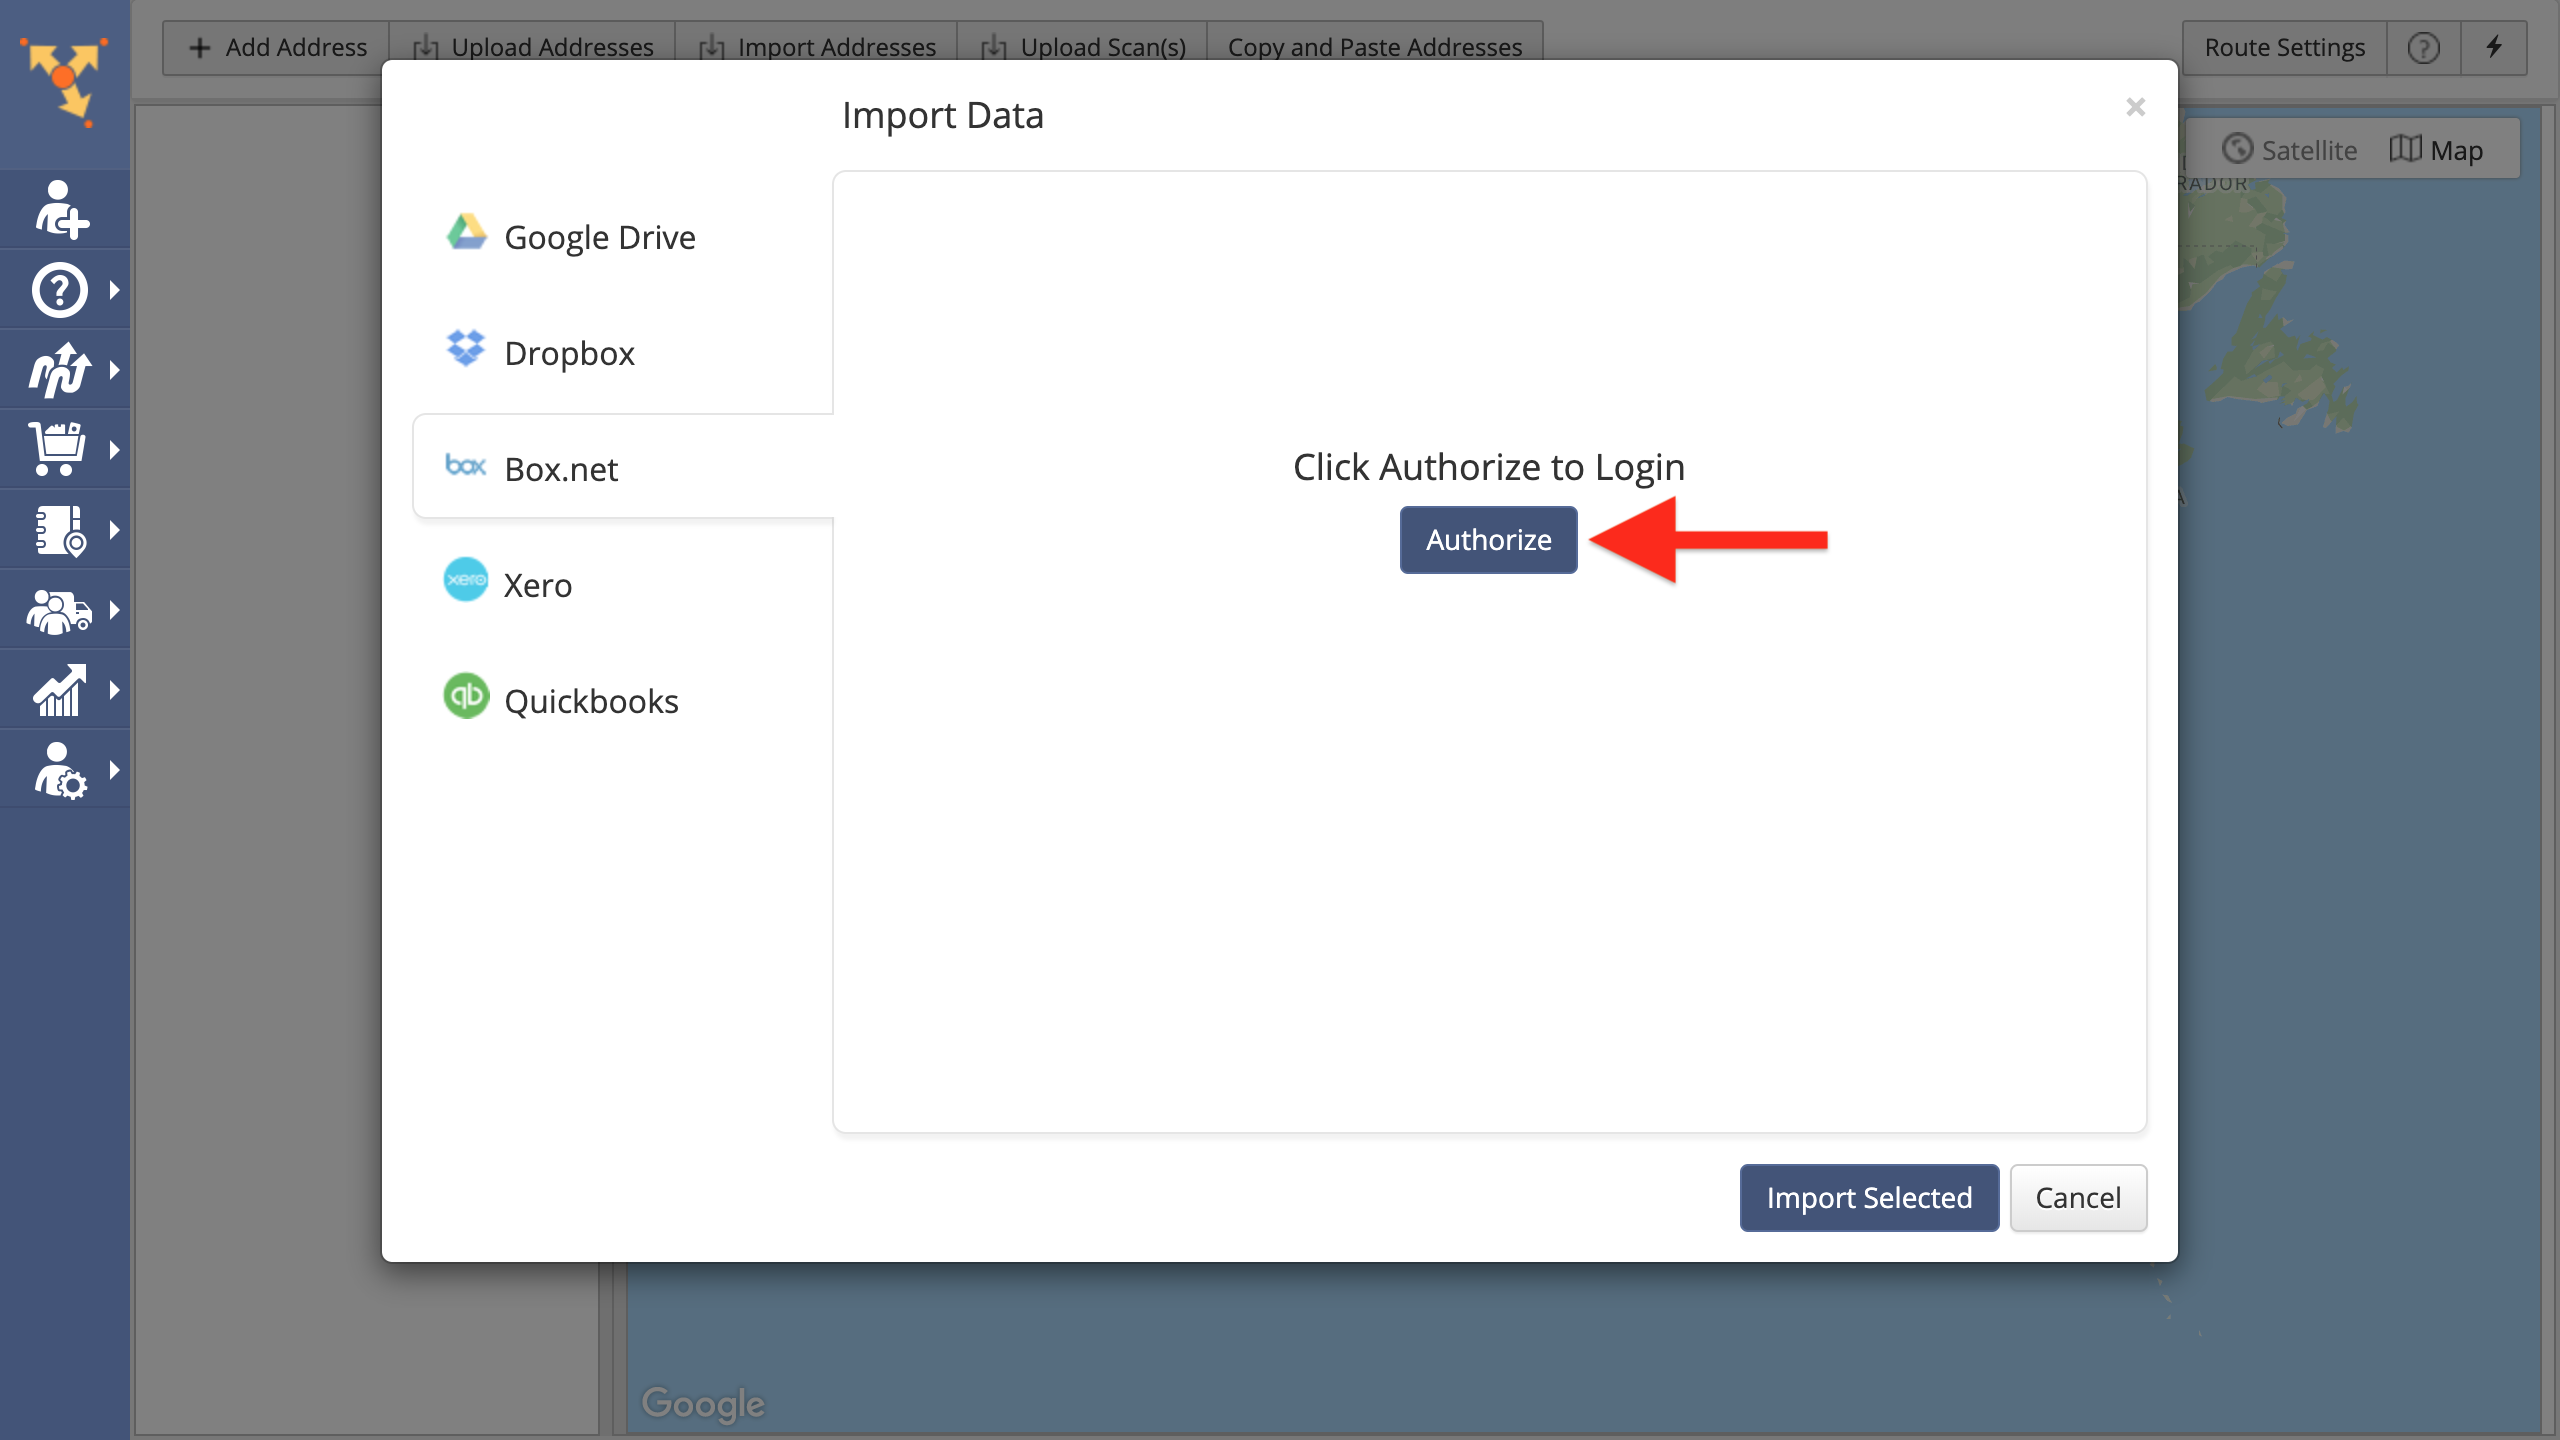 Box (Box net) Data Import - Importing Data from Box for Planning